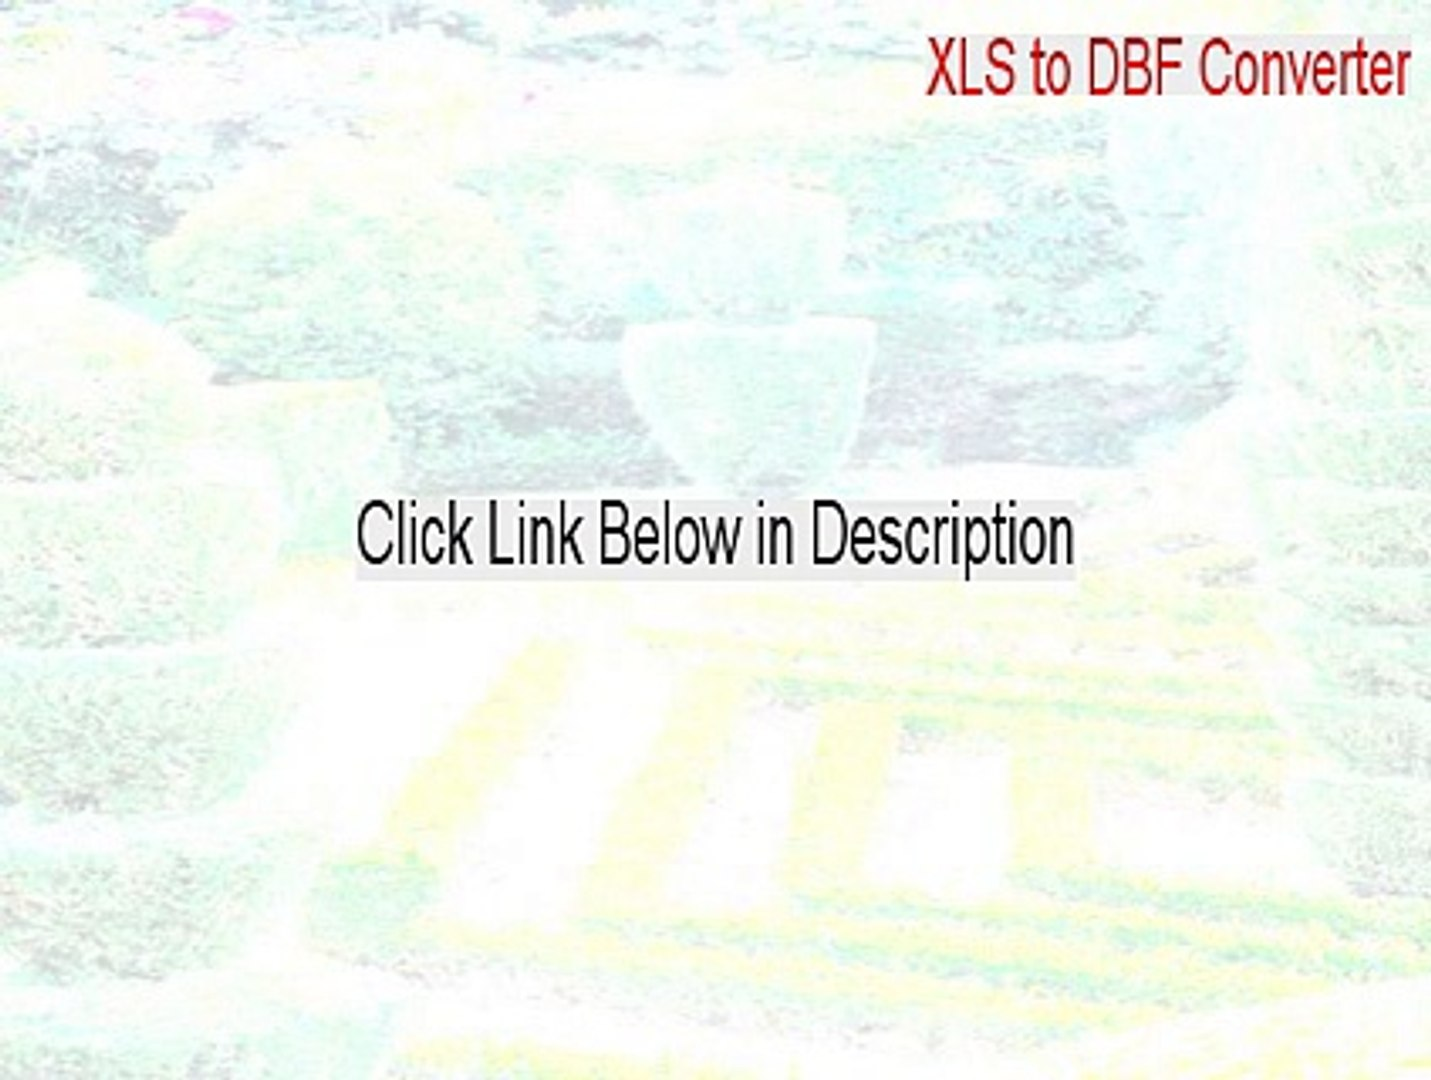 XLS to DBF Converter Keygen - Instant Download [2015]